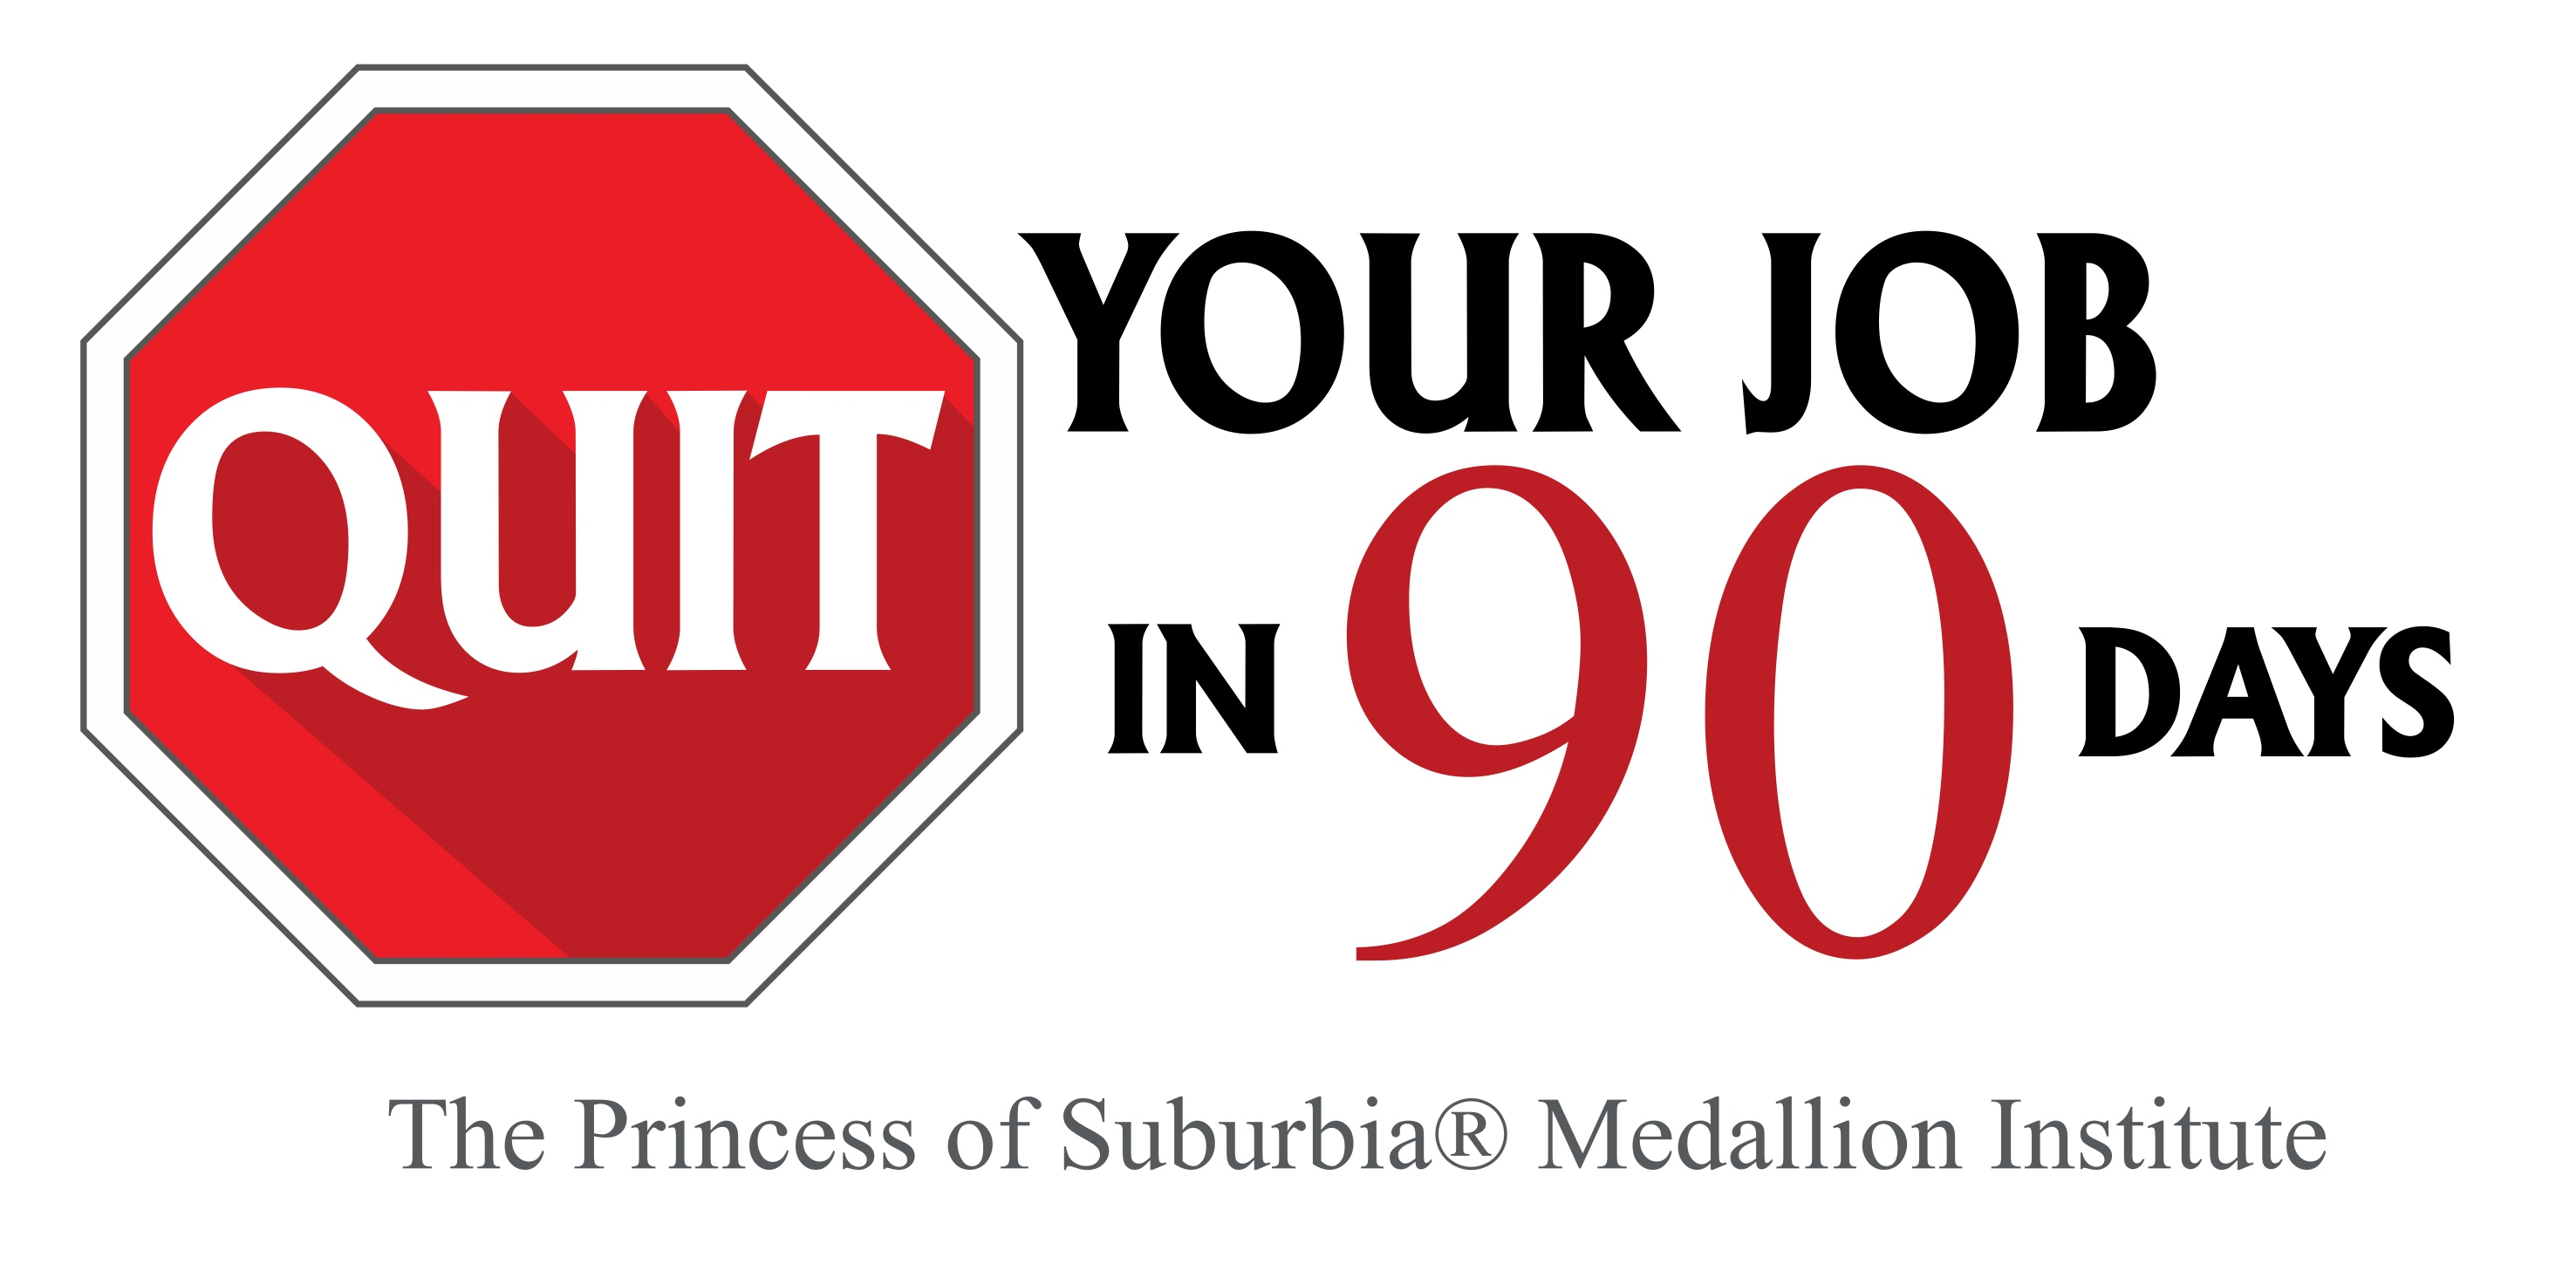 Quit Your Job in 90 Days